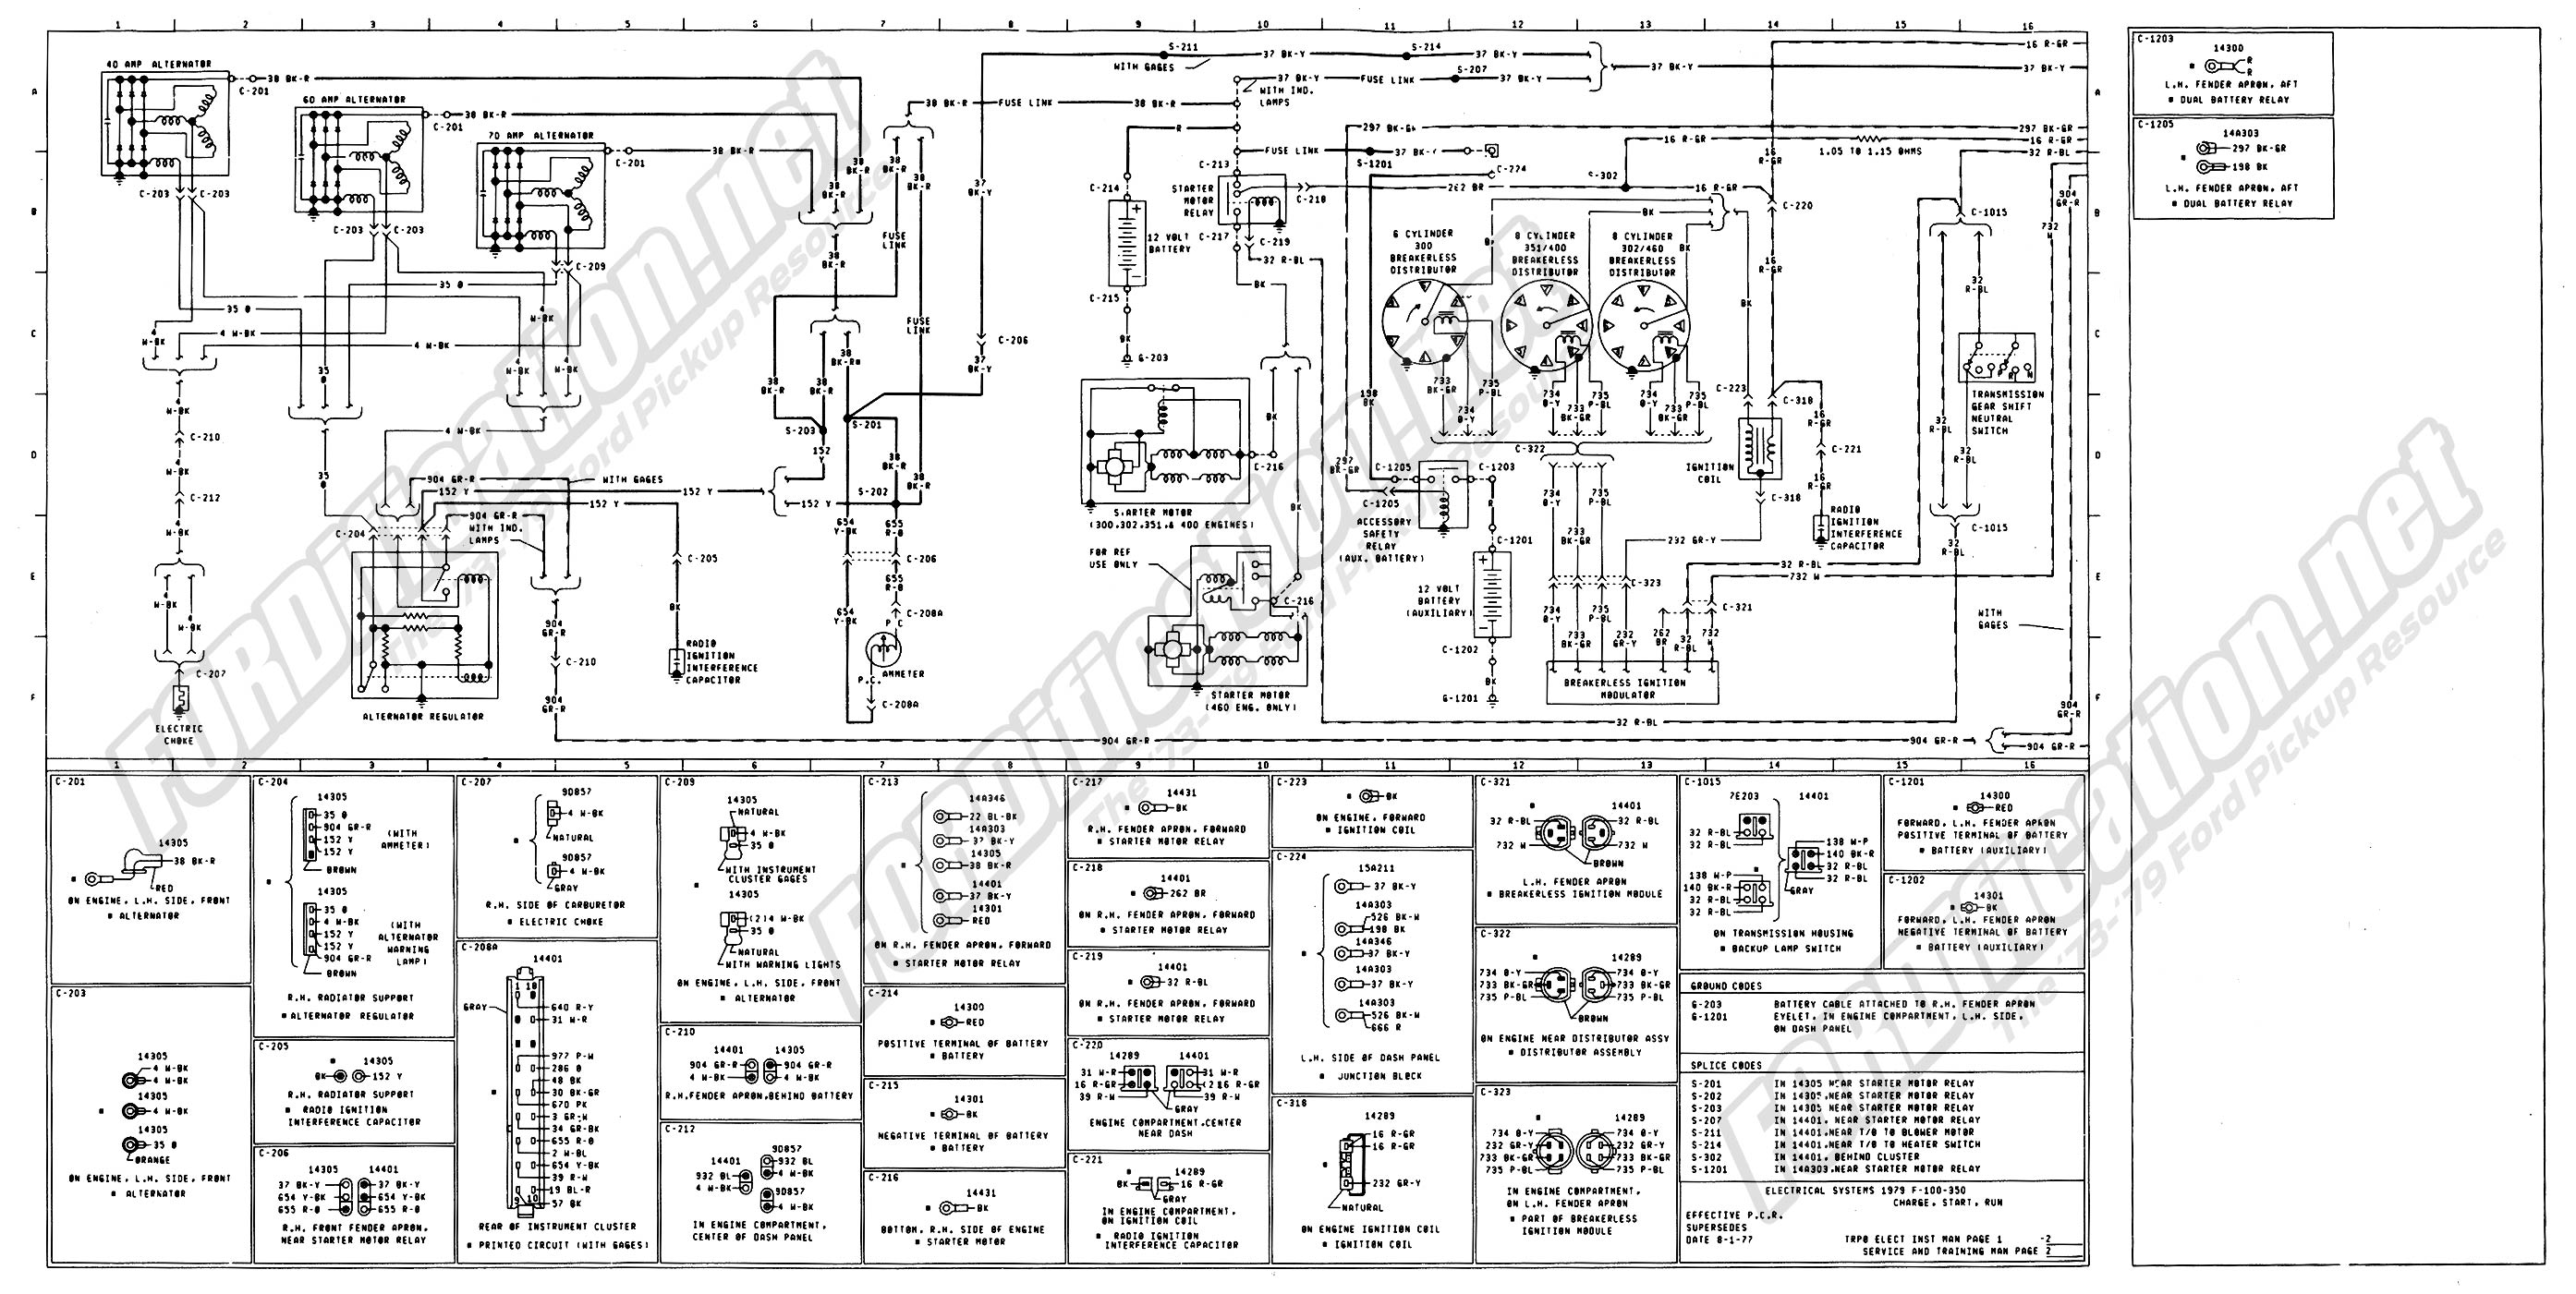 Ihc Truck Wiring Diagrams on gm truck wiring diagrams, cat truck wiring diagrams, international truck parts diagrams, international truck electrical diagrams, ihc truck parts, mazda truck wiring diagrams, international truck wiring diagrams, chevrolet truck wiring diagrams, kenworth truck wiring diagrams, mack truck wiring diagrams, dodge truck wiring diagrams, medium duty truck wiring diagrams, ford truck wiring diagrams, freightliner truck wiring diagrams,